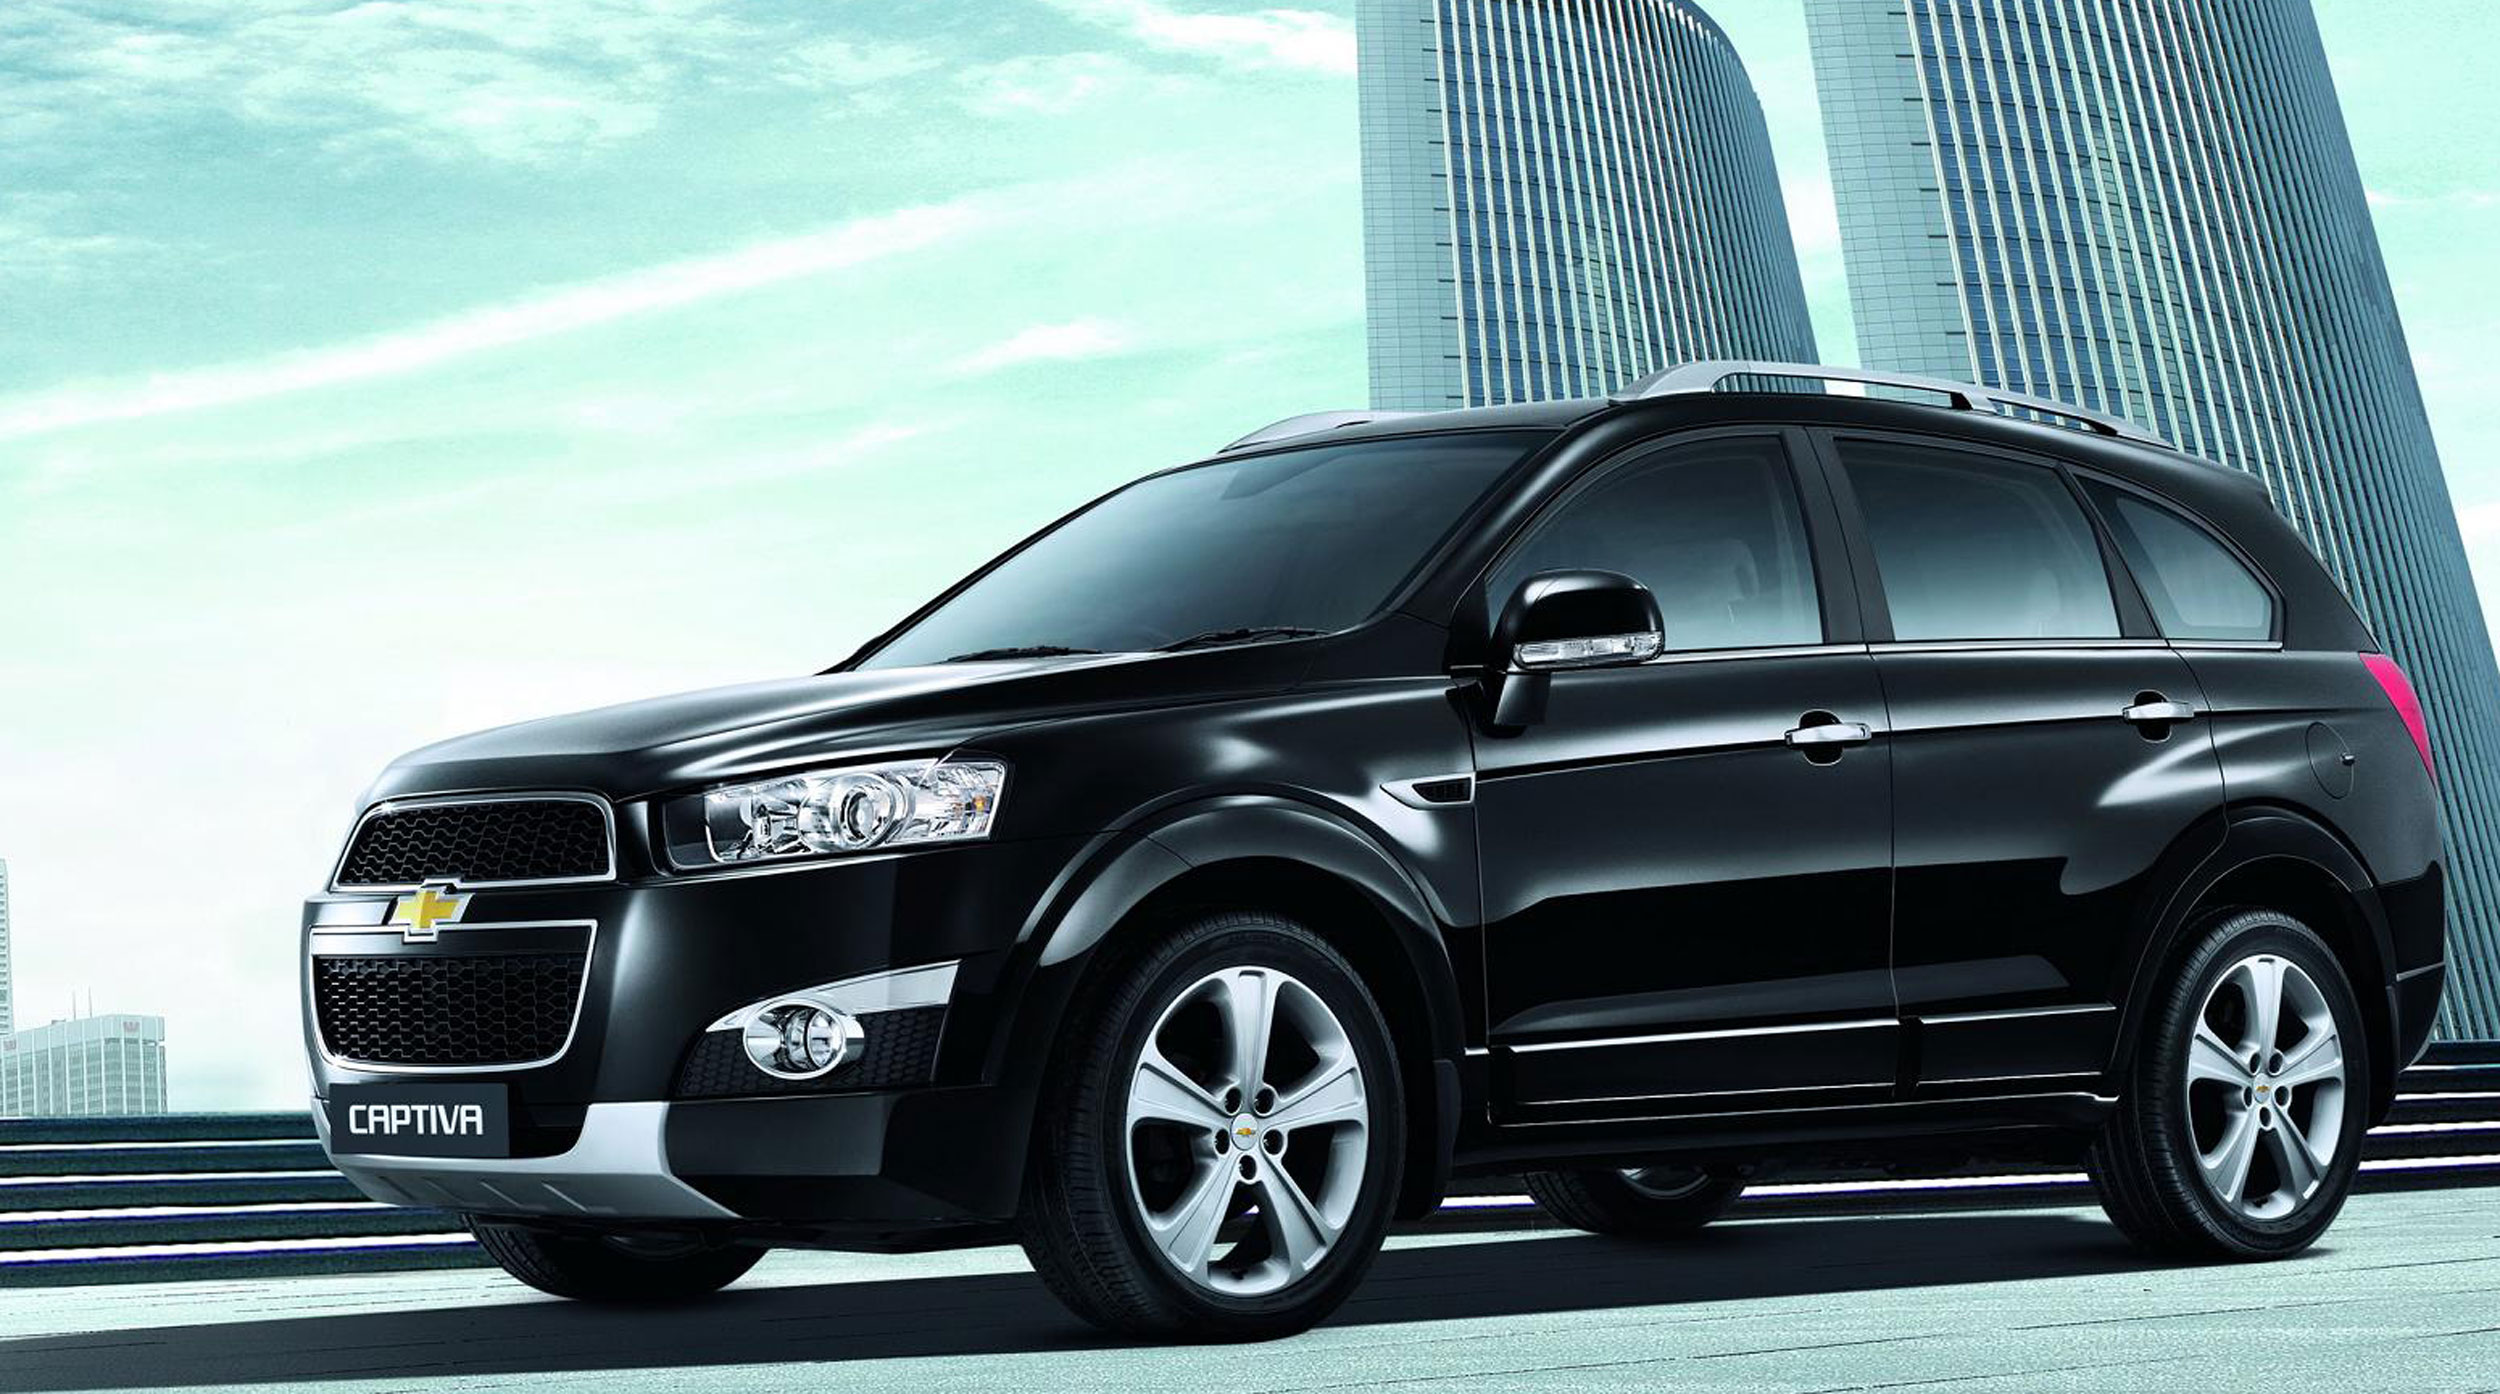 chevrolet malaysia offers captiva purchase deal. Black Bedroom Furniture Sets. Home Design Ideas